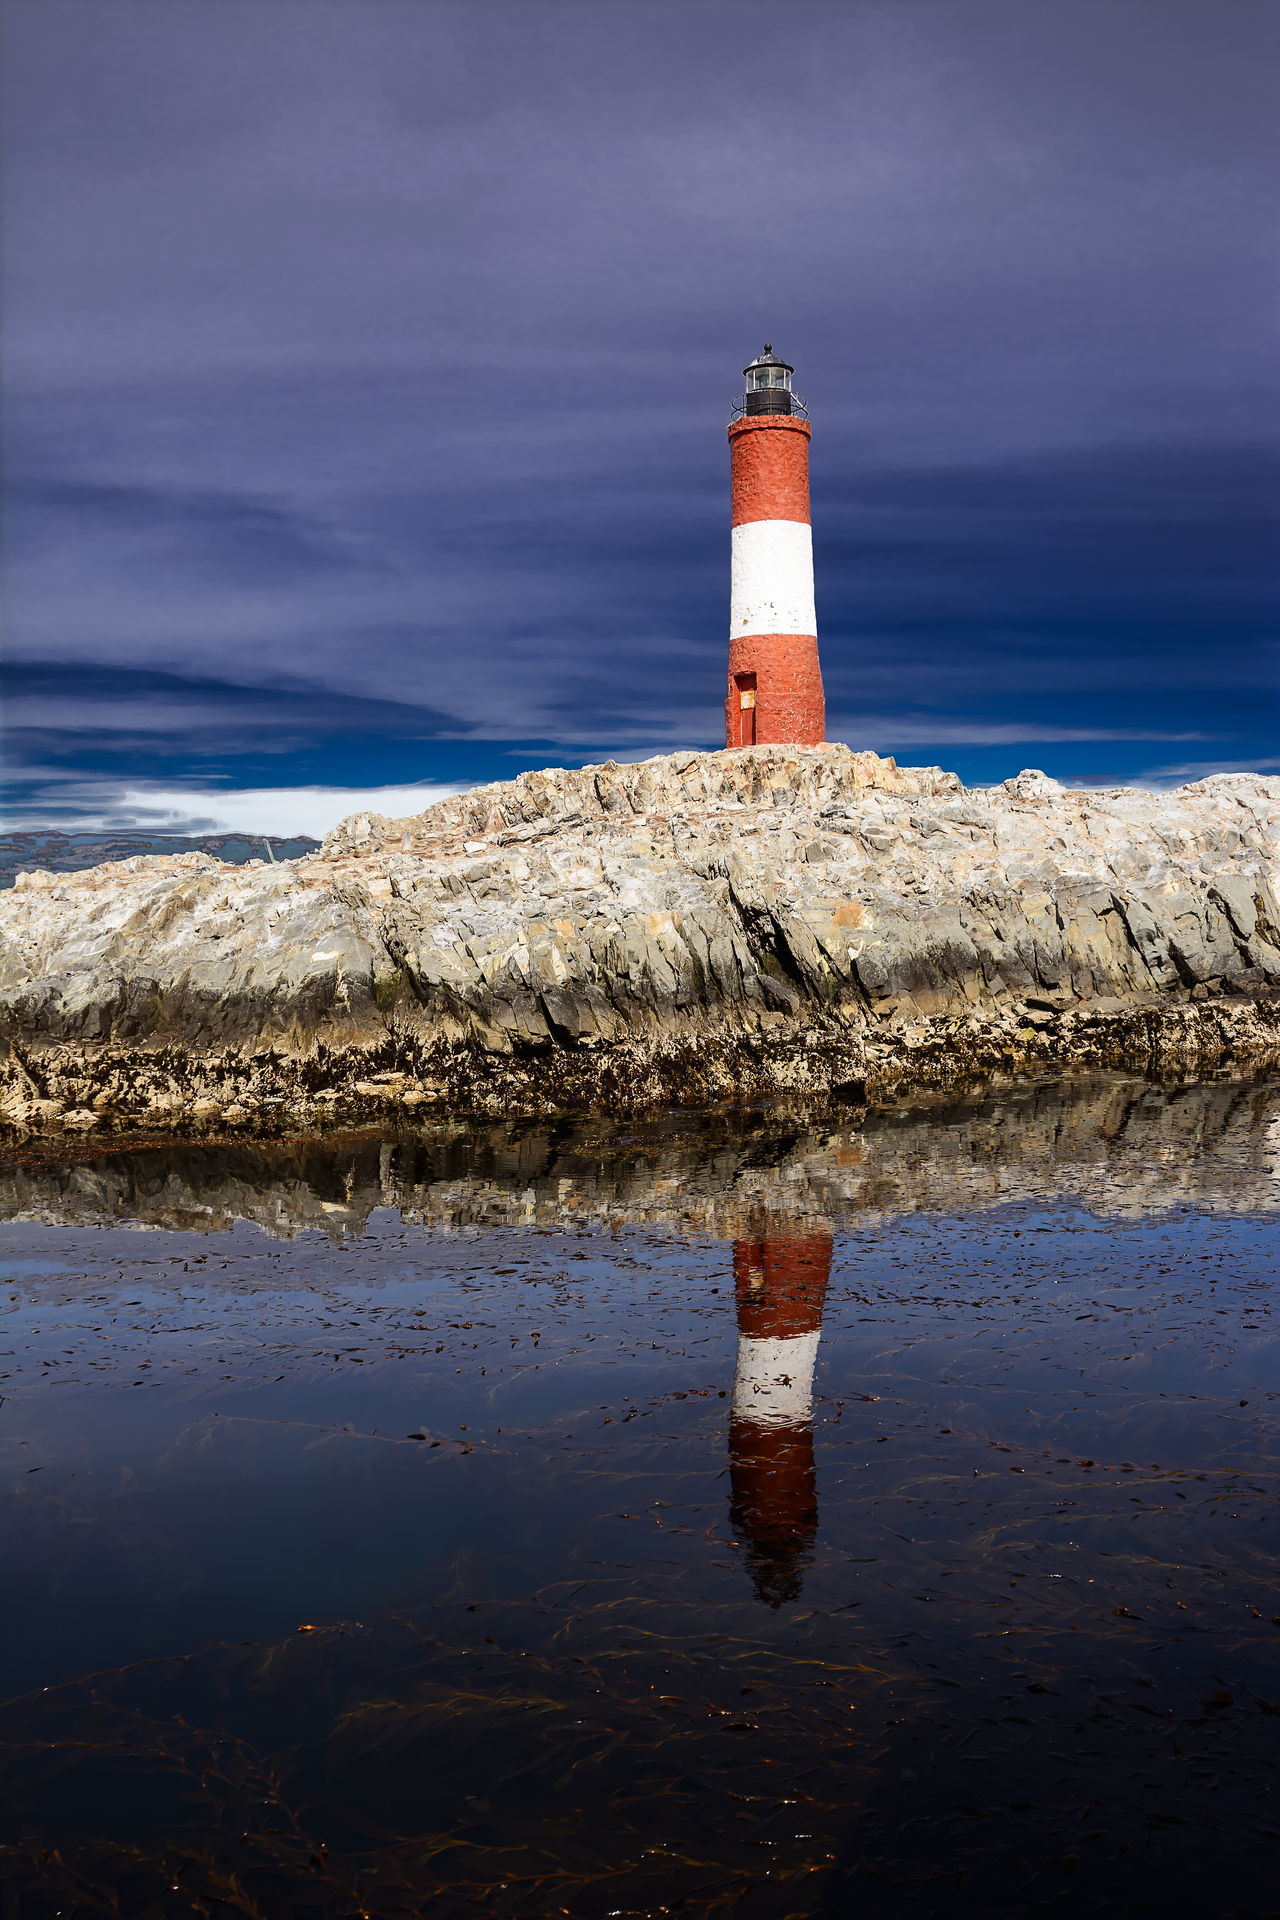 Lighthouse Les eclaireurs in Beagle Channel near Ushuaia Argentina Beacon Beagle Channel Evening Land Of Fire Landmark Les Eclaireurs Les Eclaireurs Lighthouse Lighthouse Patagonia Rock Sea Tierra Del Fuego Ushuaïa